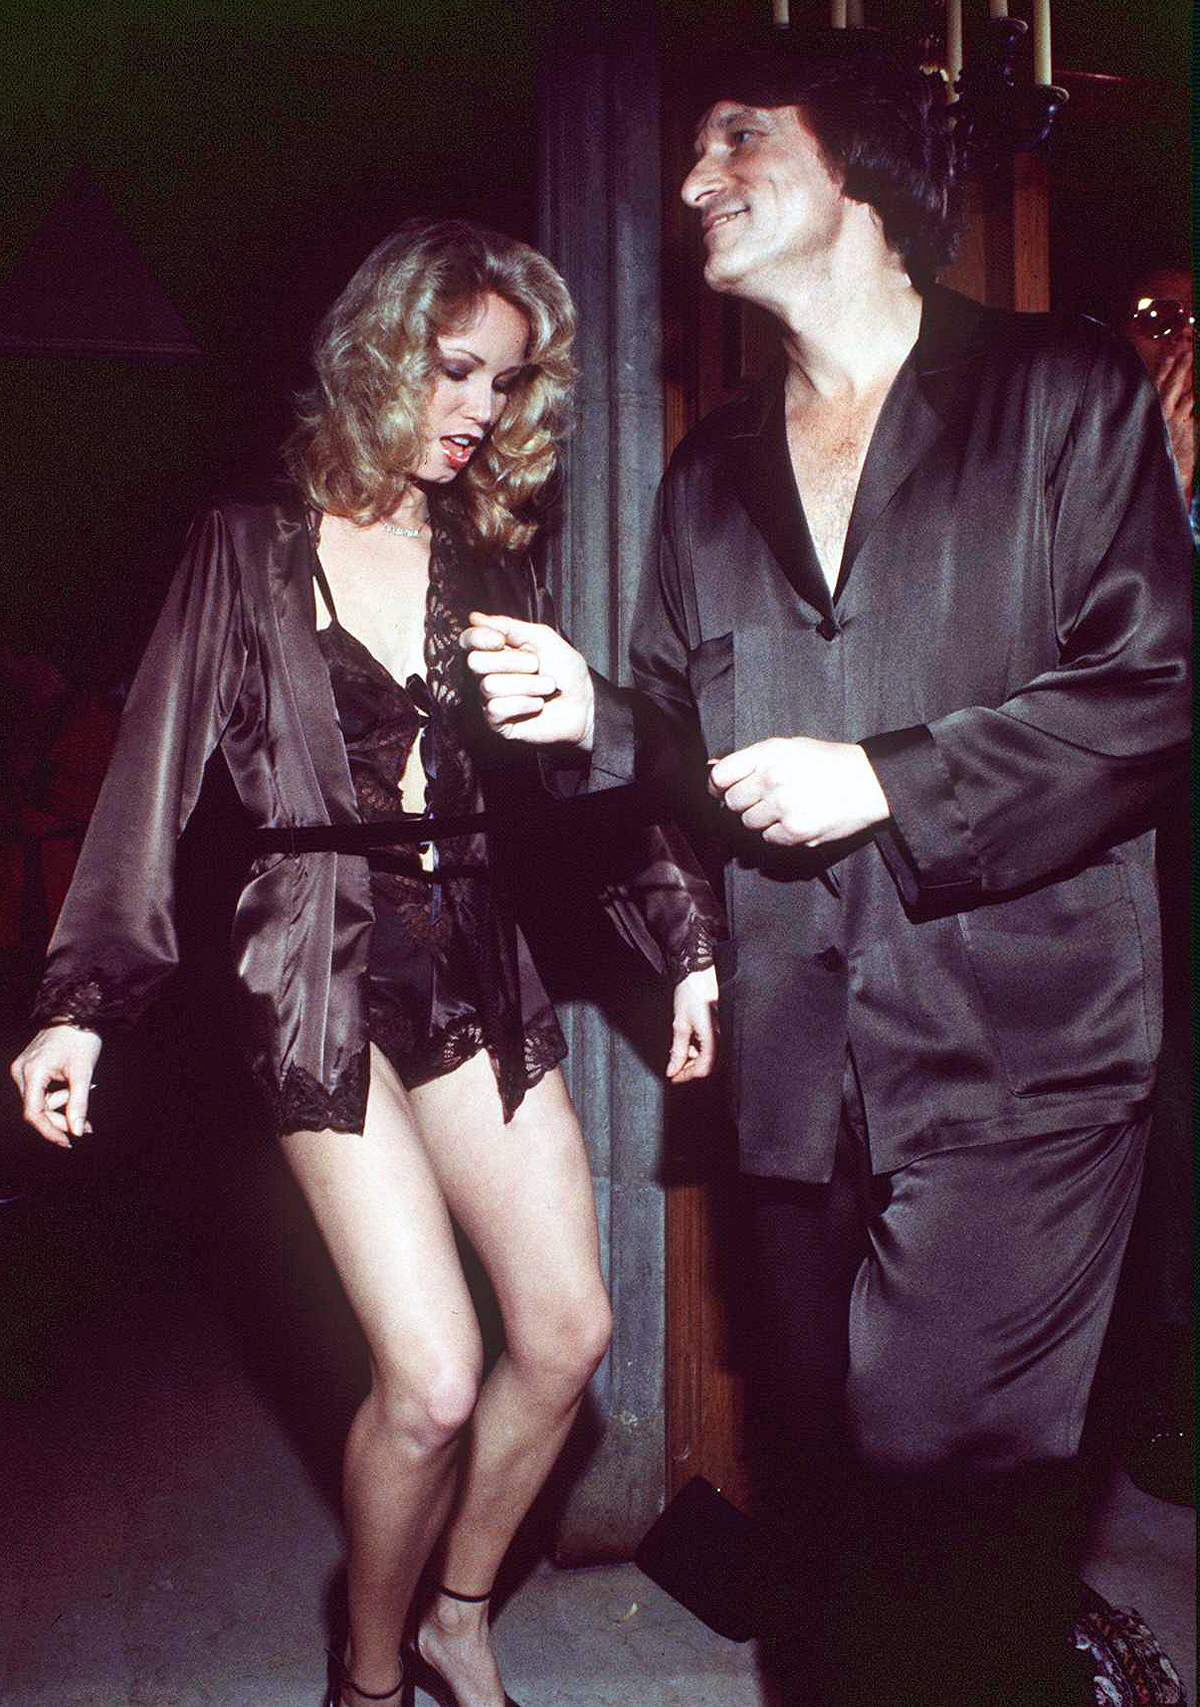 Hugh Hefner And A Girl Dancing At The Playboy Mansion In Beverly Hills